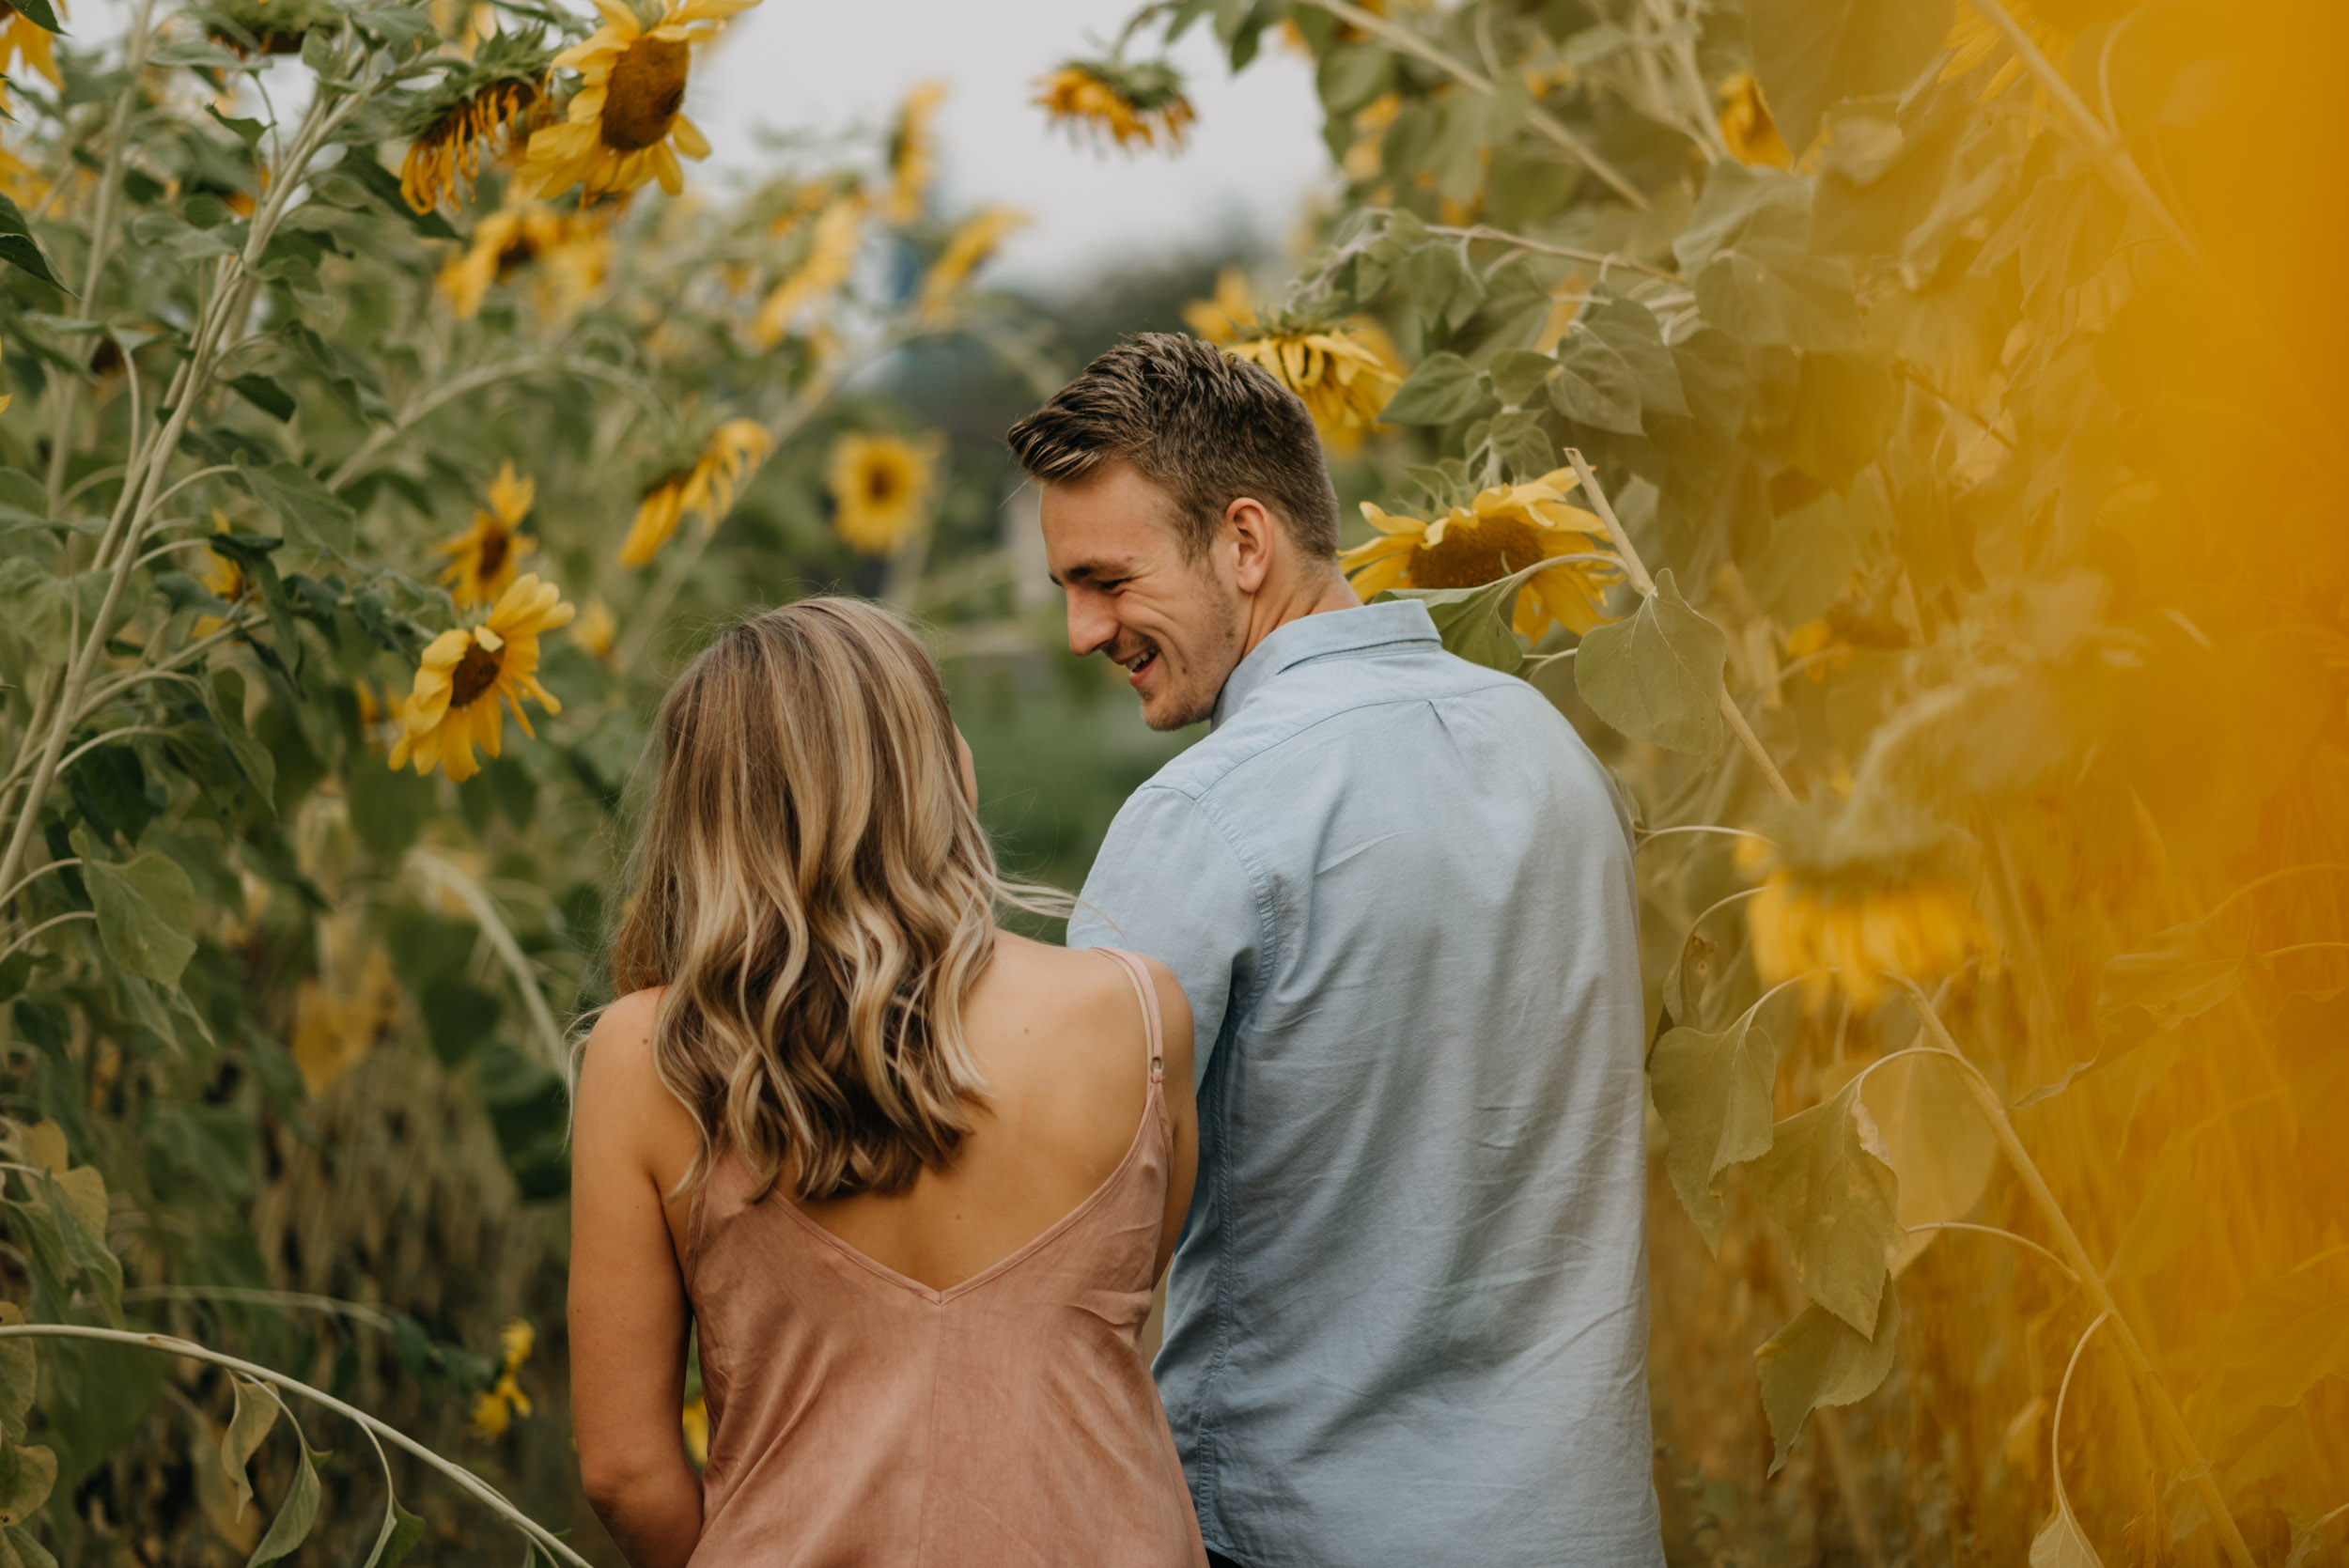 Sauvie-Island-Oregon-Sunflower-Portland-Engagement-3808.jpg